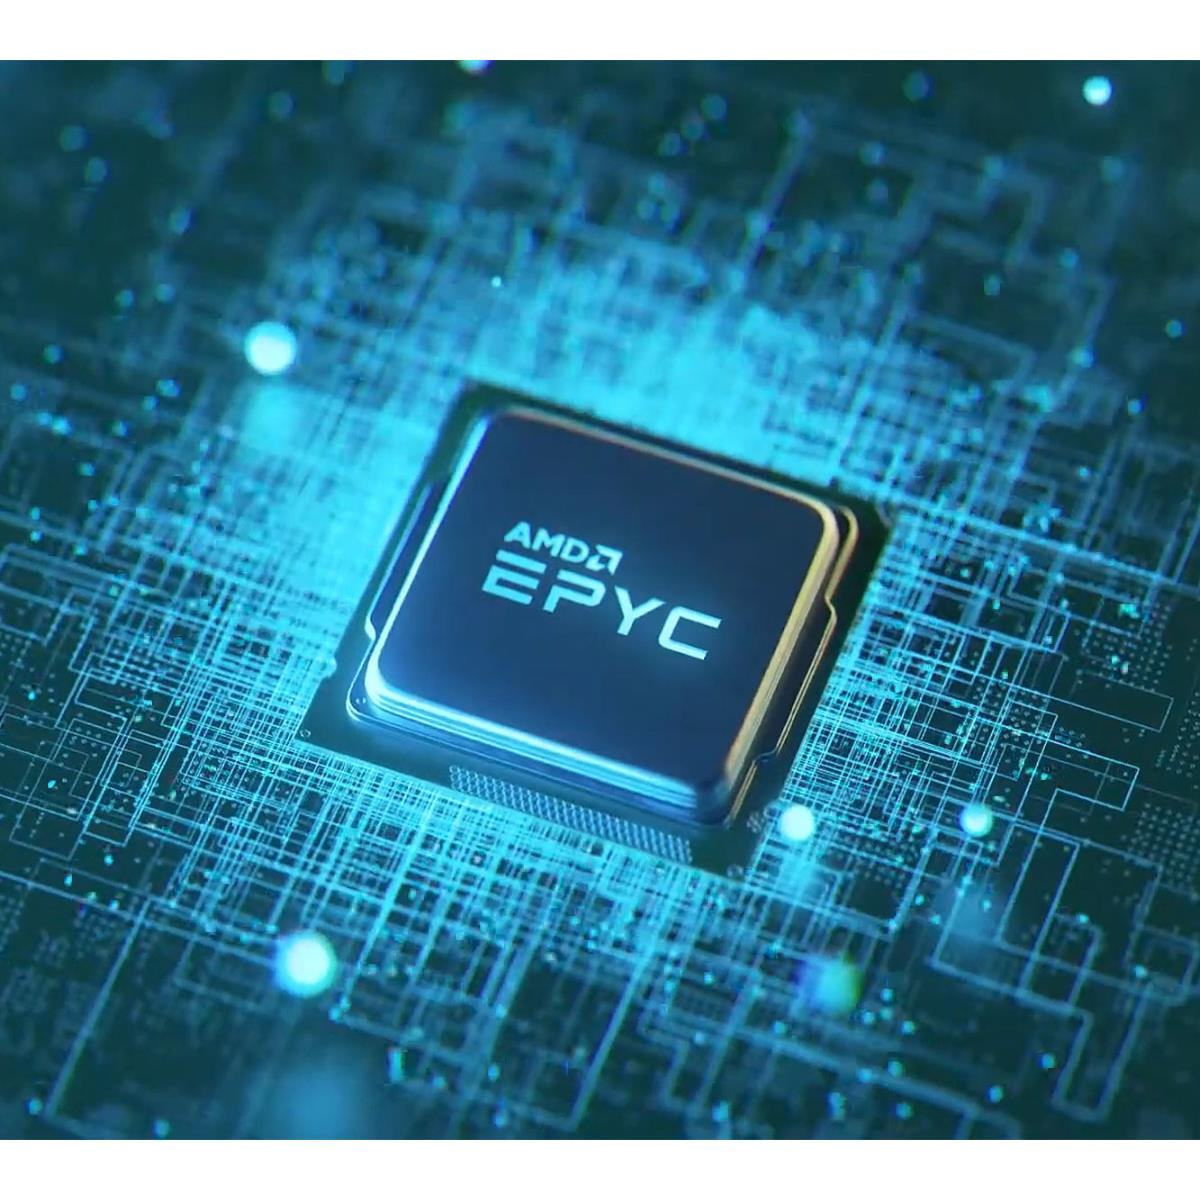 Amd Confirms All New Architecture For Zen 3 Epyc Milan Cpus And Huge Ipc Gains Hothardware